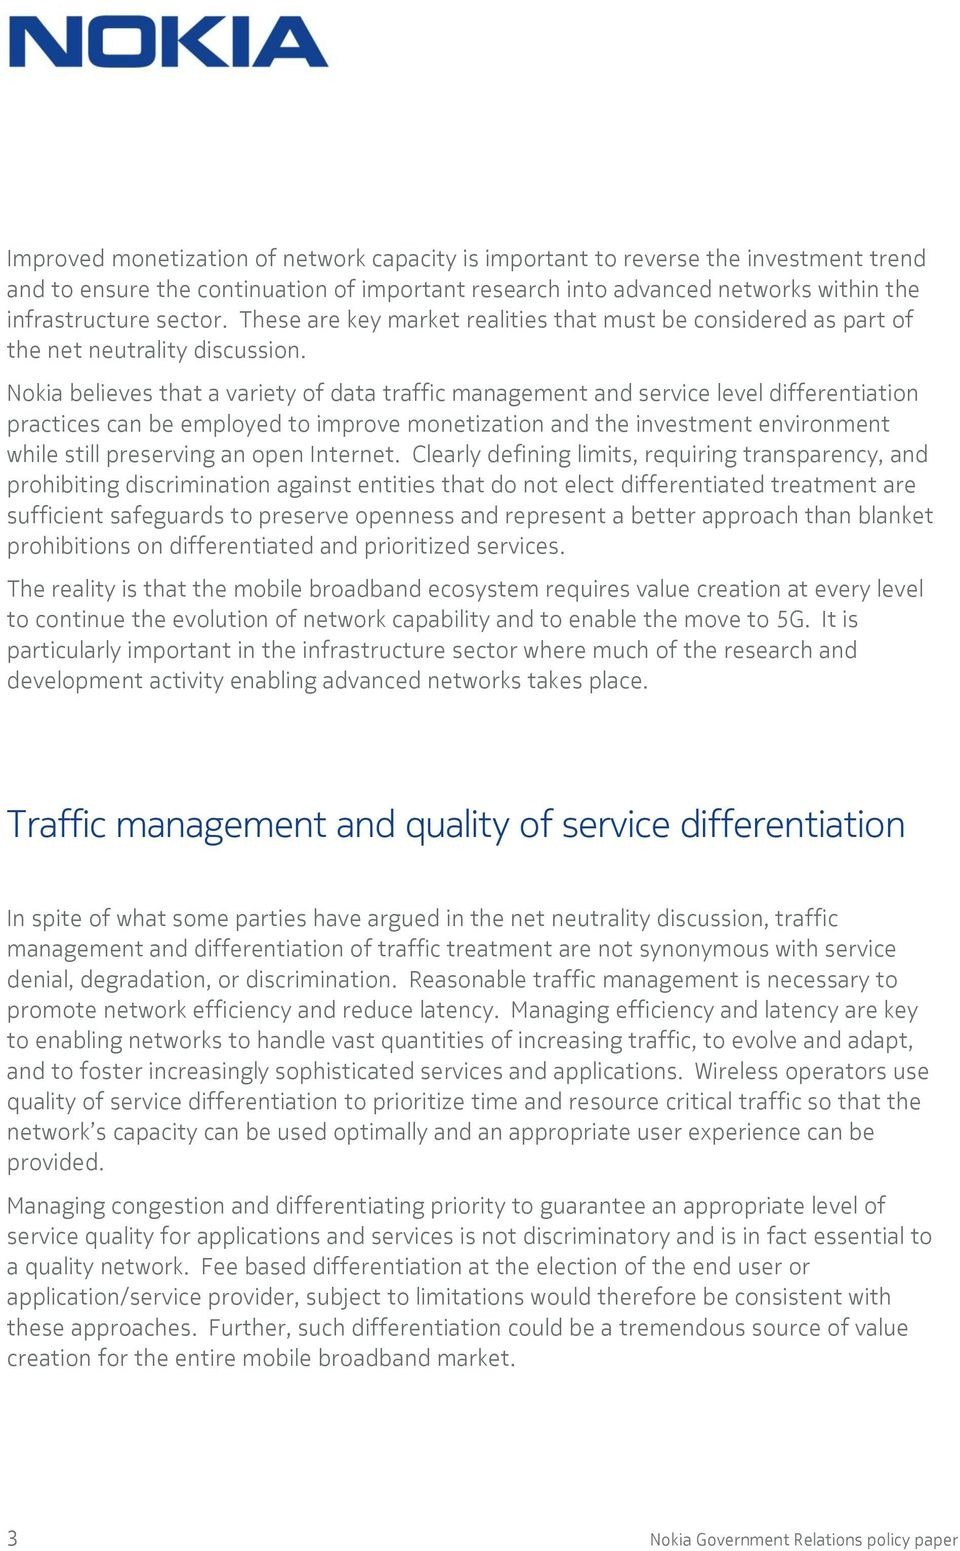 Nokia believes that a variety of data traffic management and service level differentiation practices can be employed to improve monetization and the investment environment while still preserving an